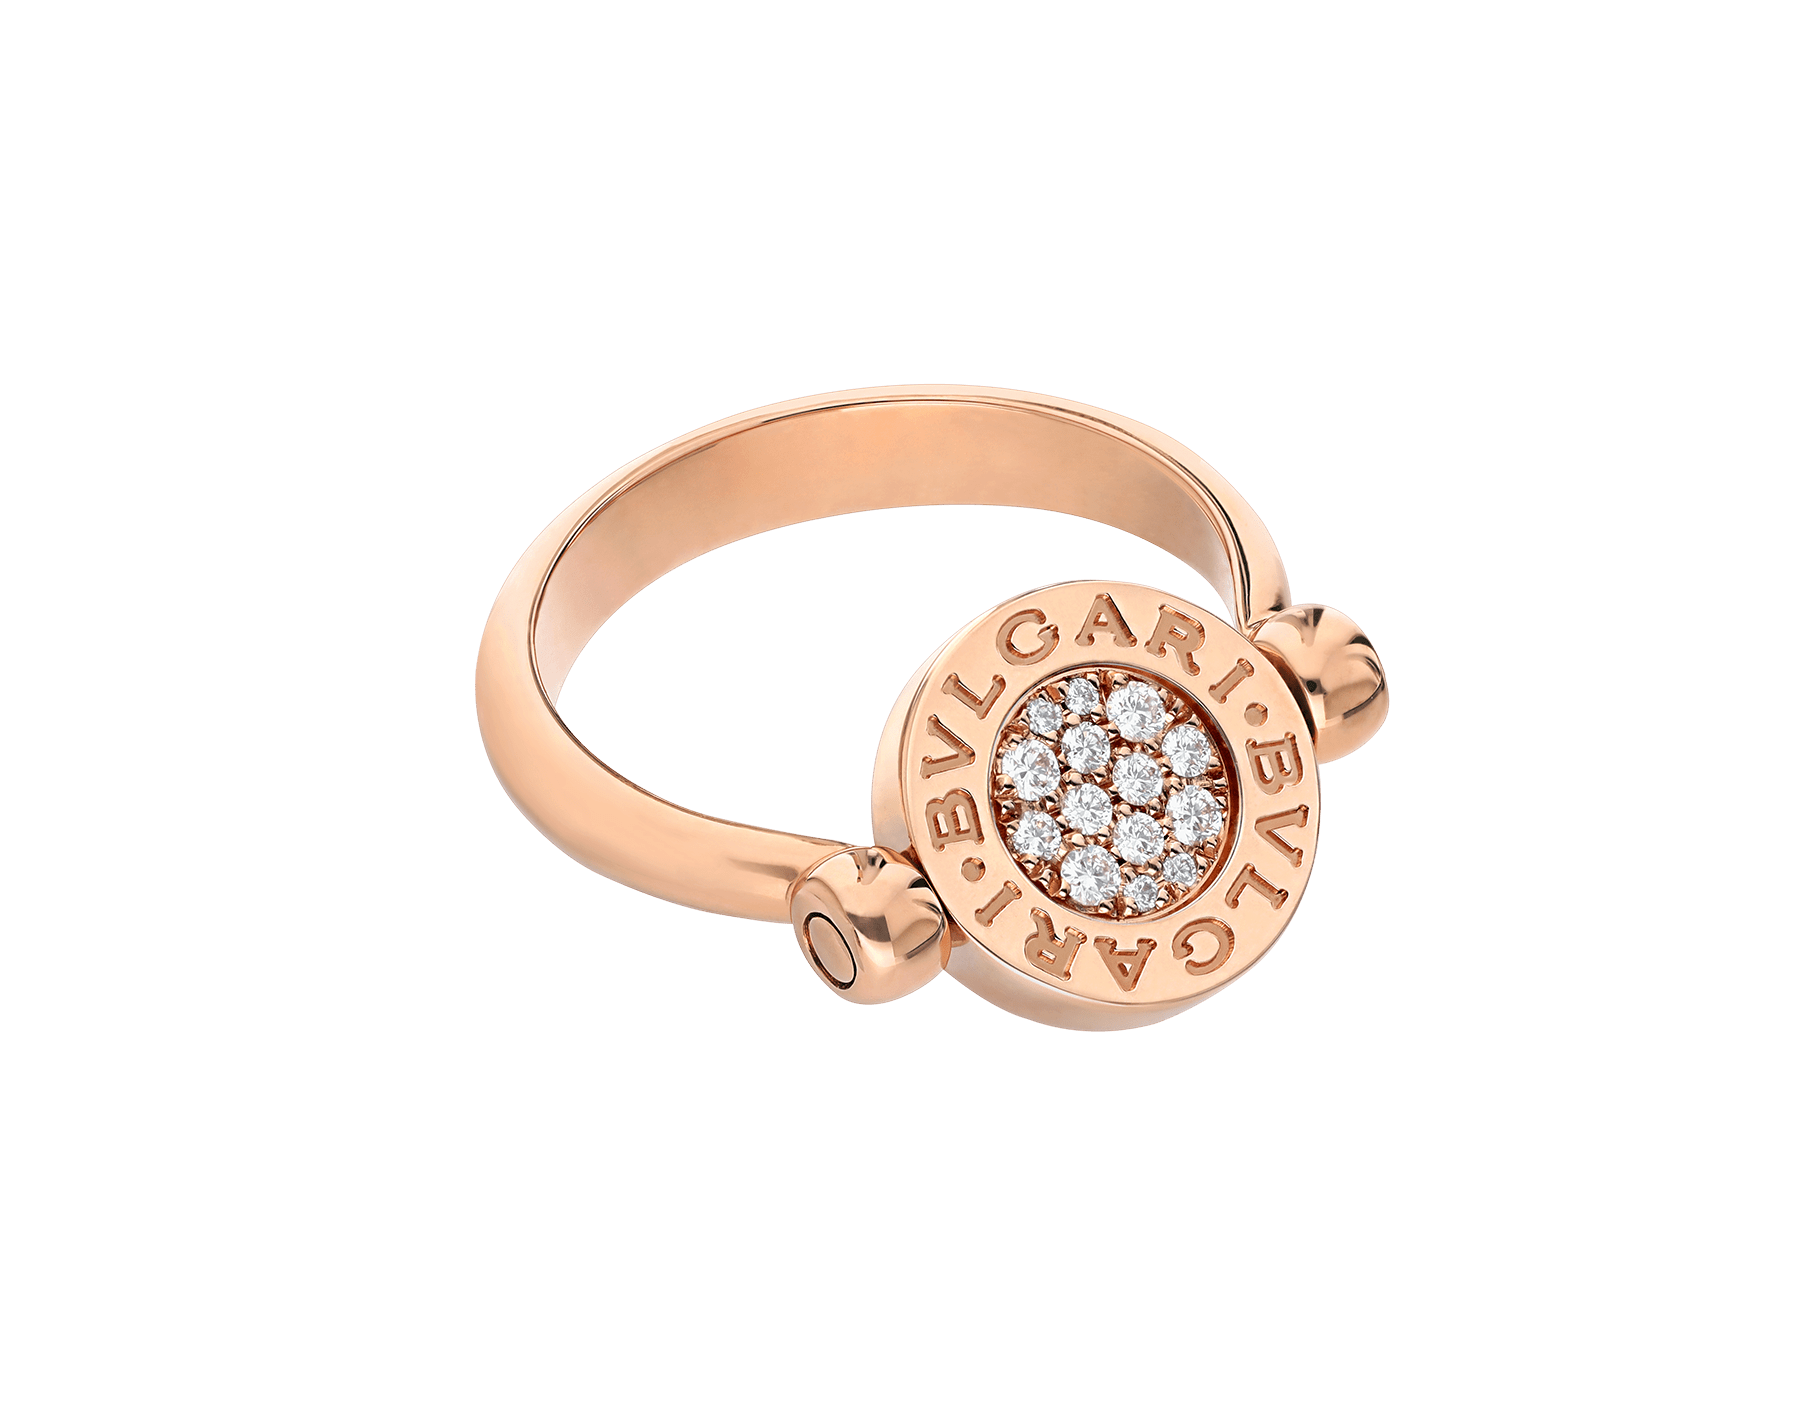 BVLGARI BVLGARI 18 kt rose gold flip ring set with mother-of-pearl and pavé diamonds AN857171 image 2